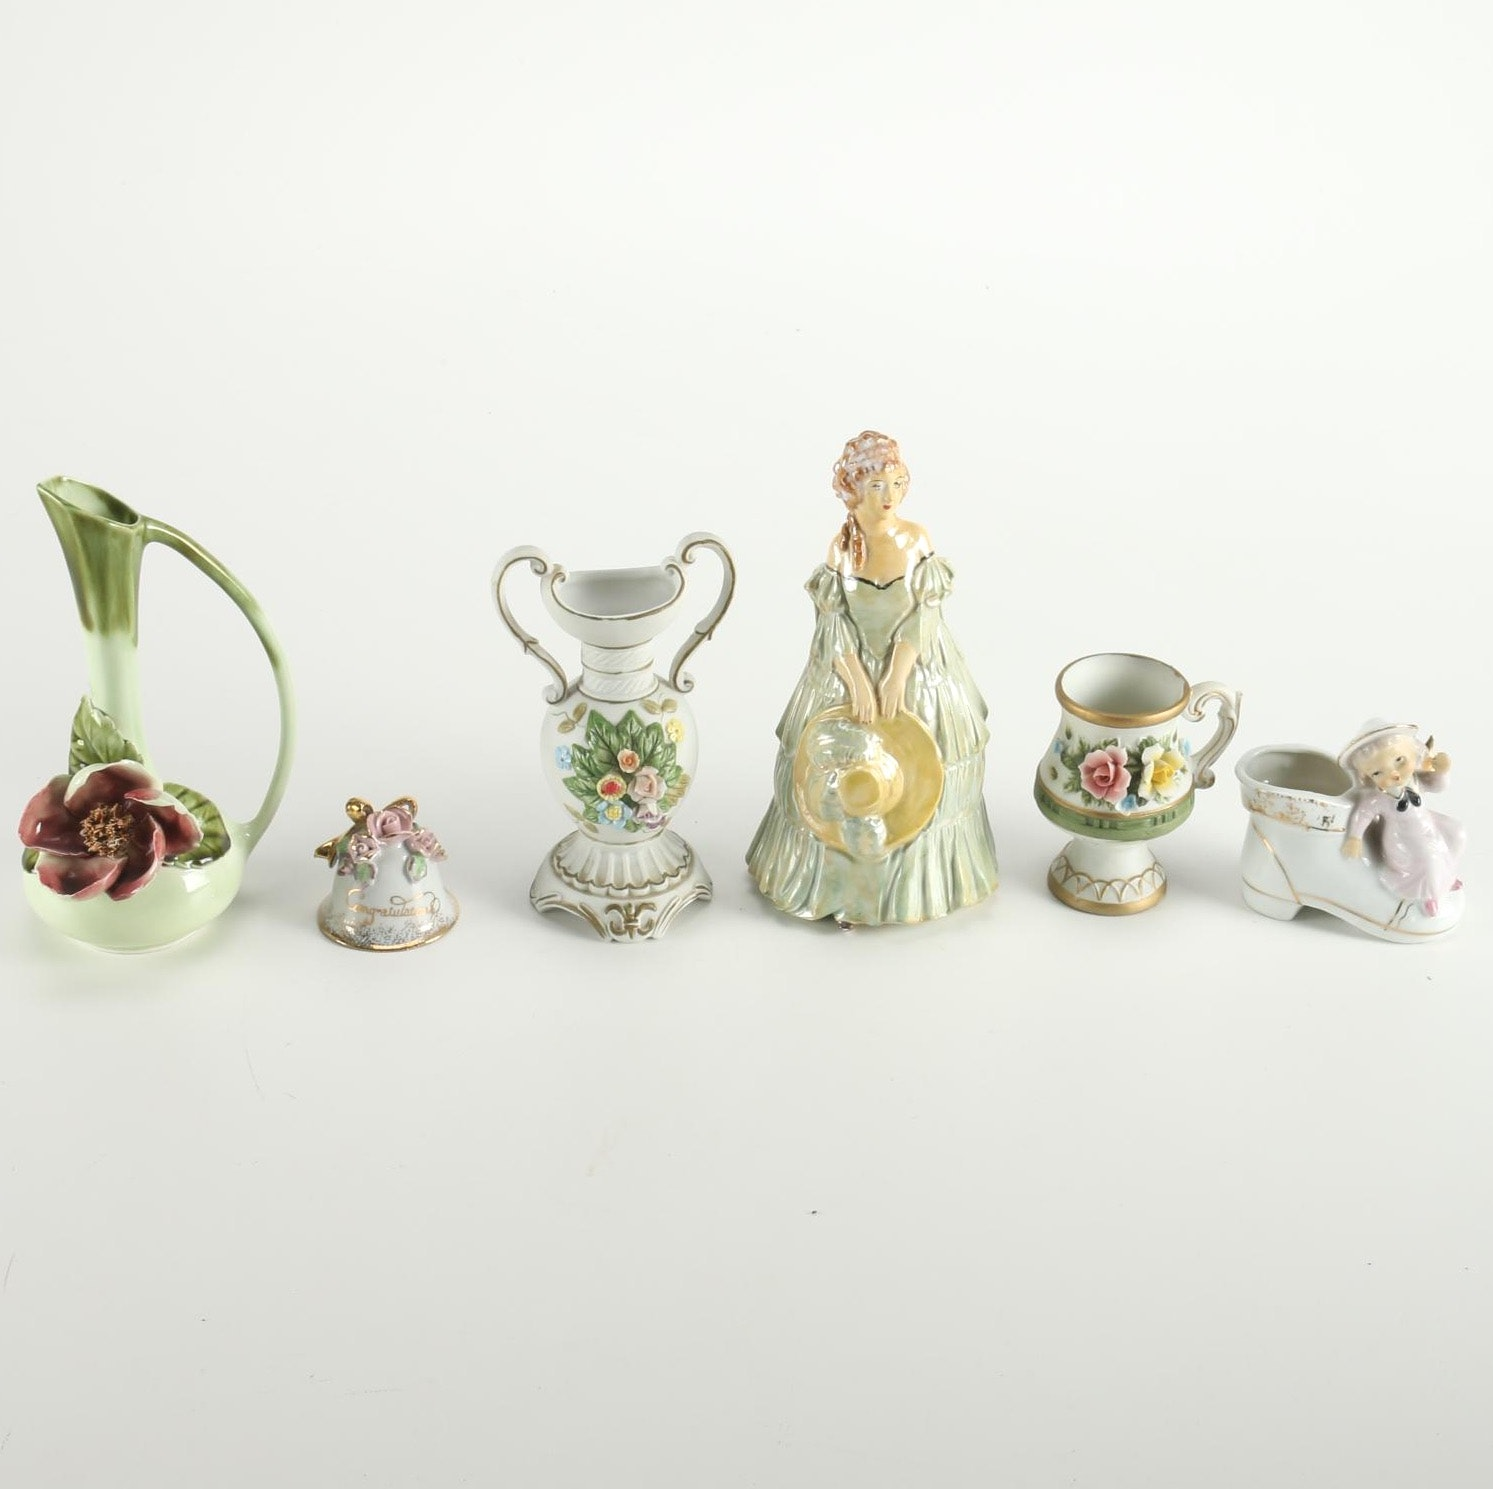 Ceramic Décor and Figurines Featuring Royal Crown